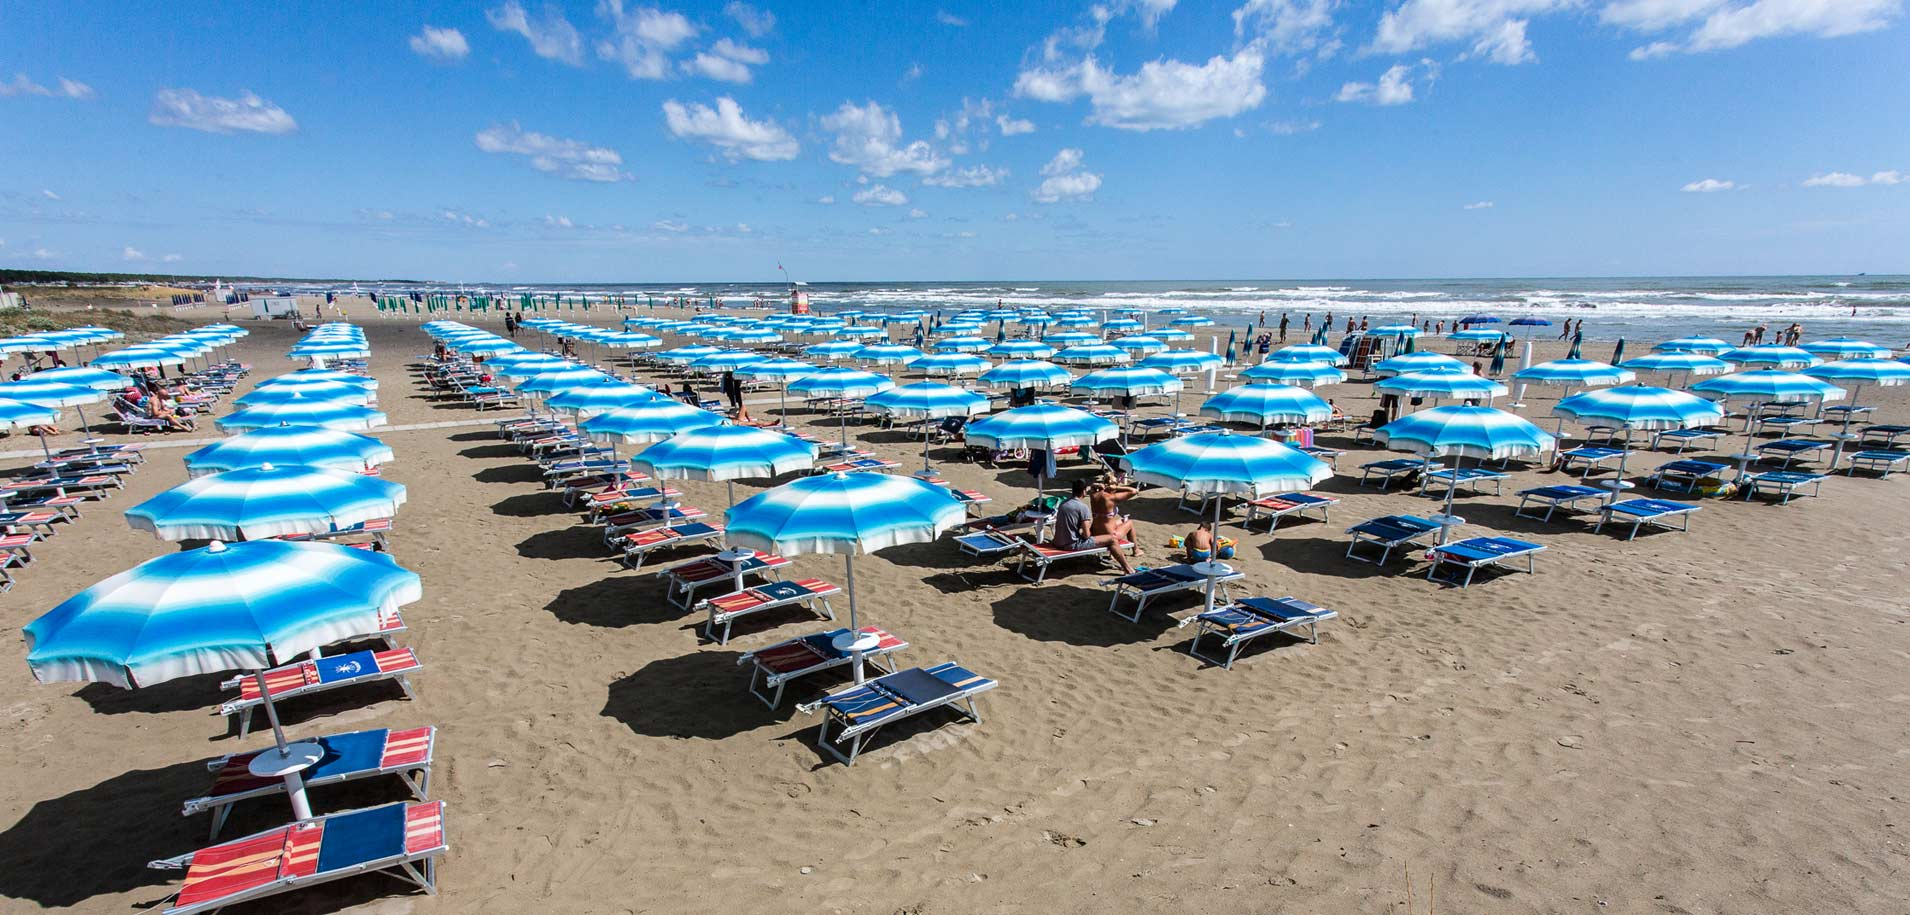 Open until 30th September, endless italian summer! | Villaggio del Sole